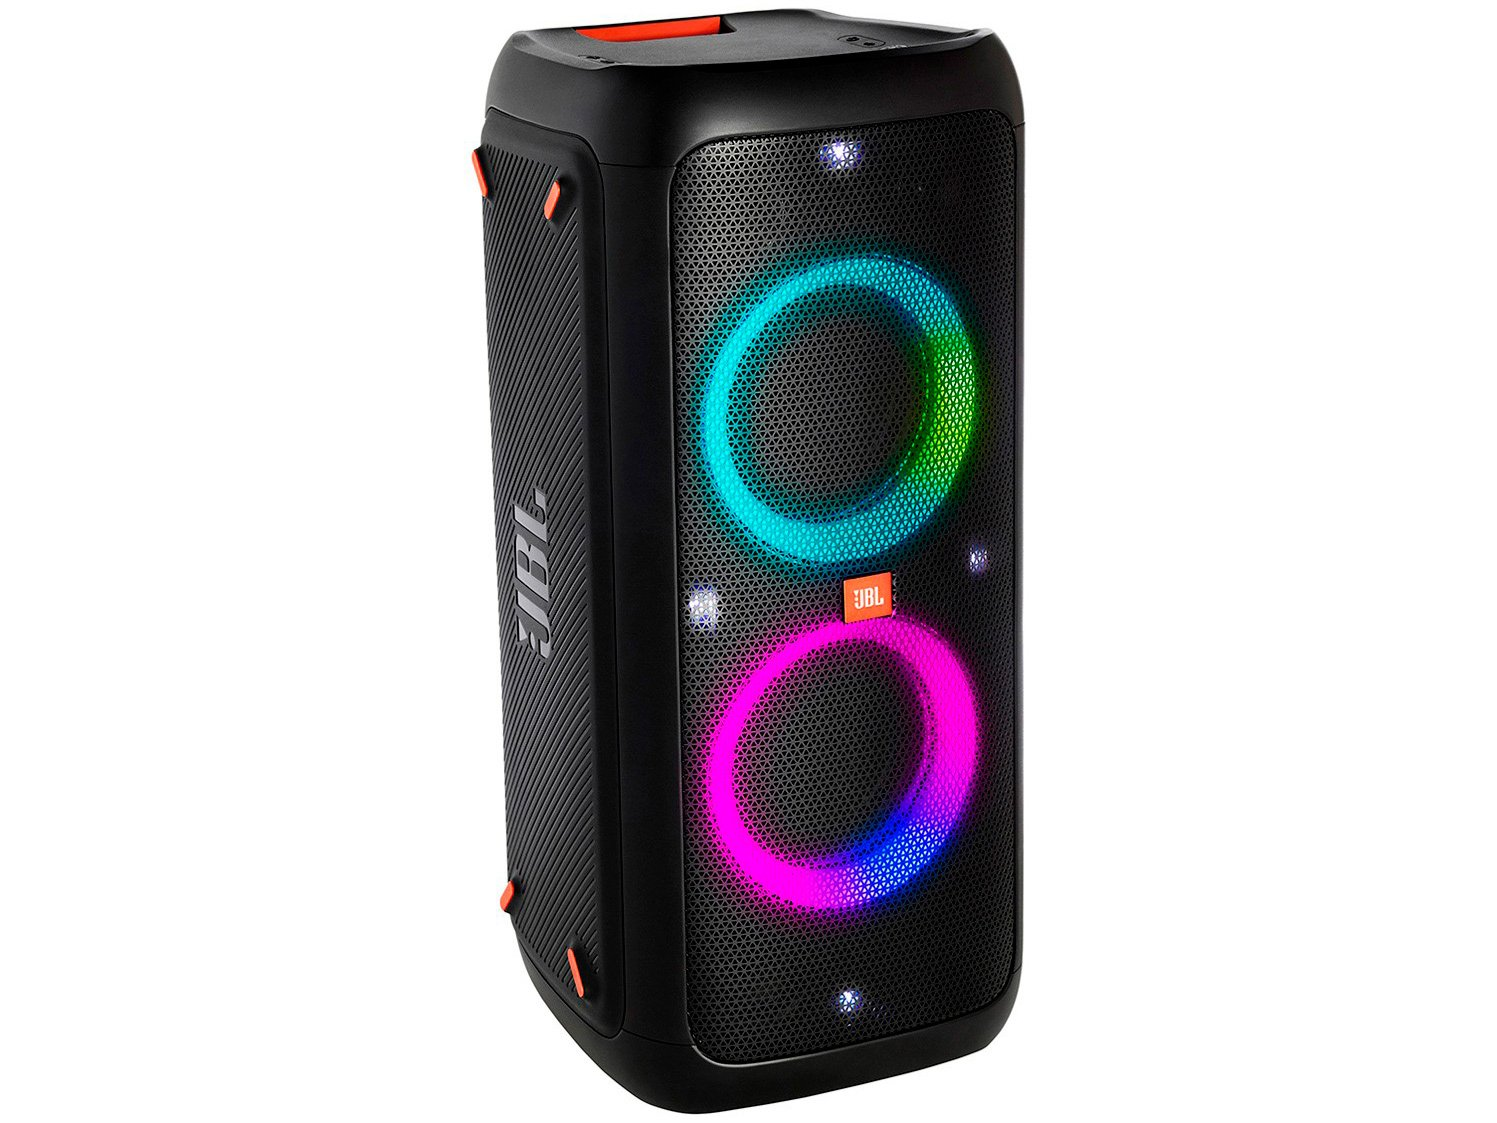 Caixa de Som Portátil Bluetooth JBL Party Box 300 - USB 120W - Bivolt